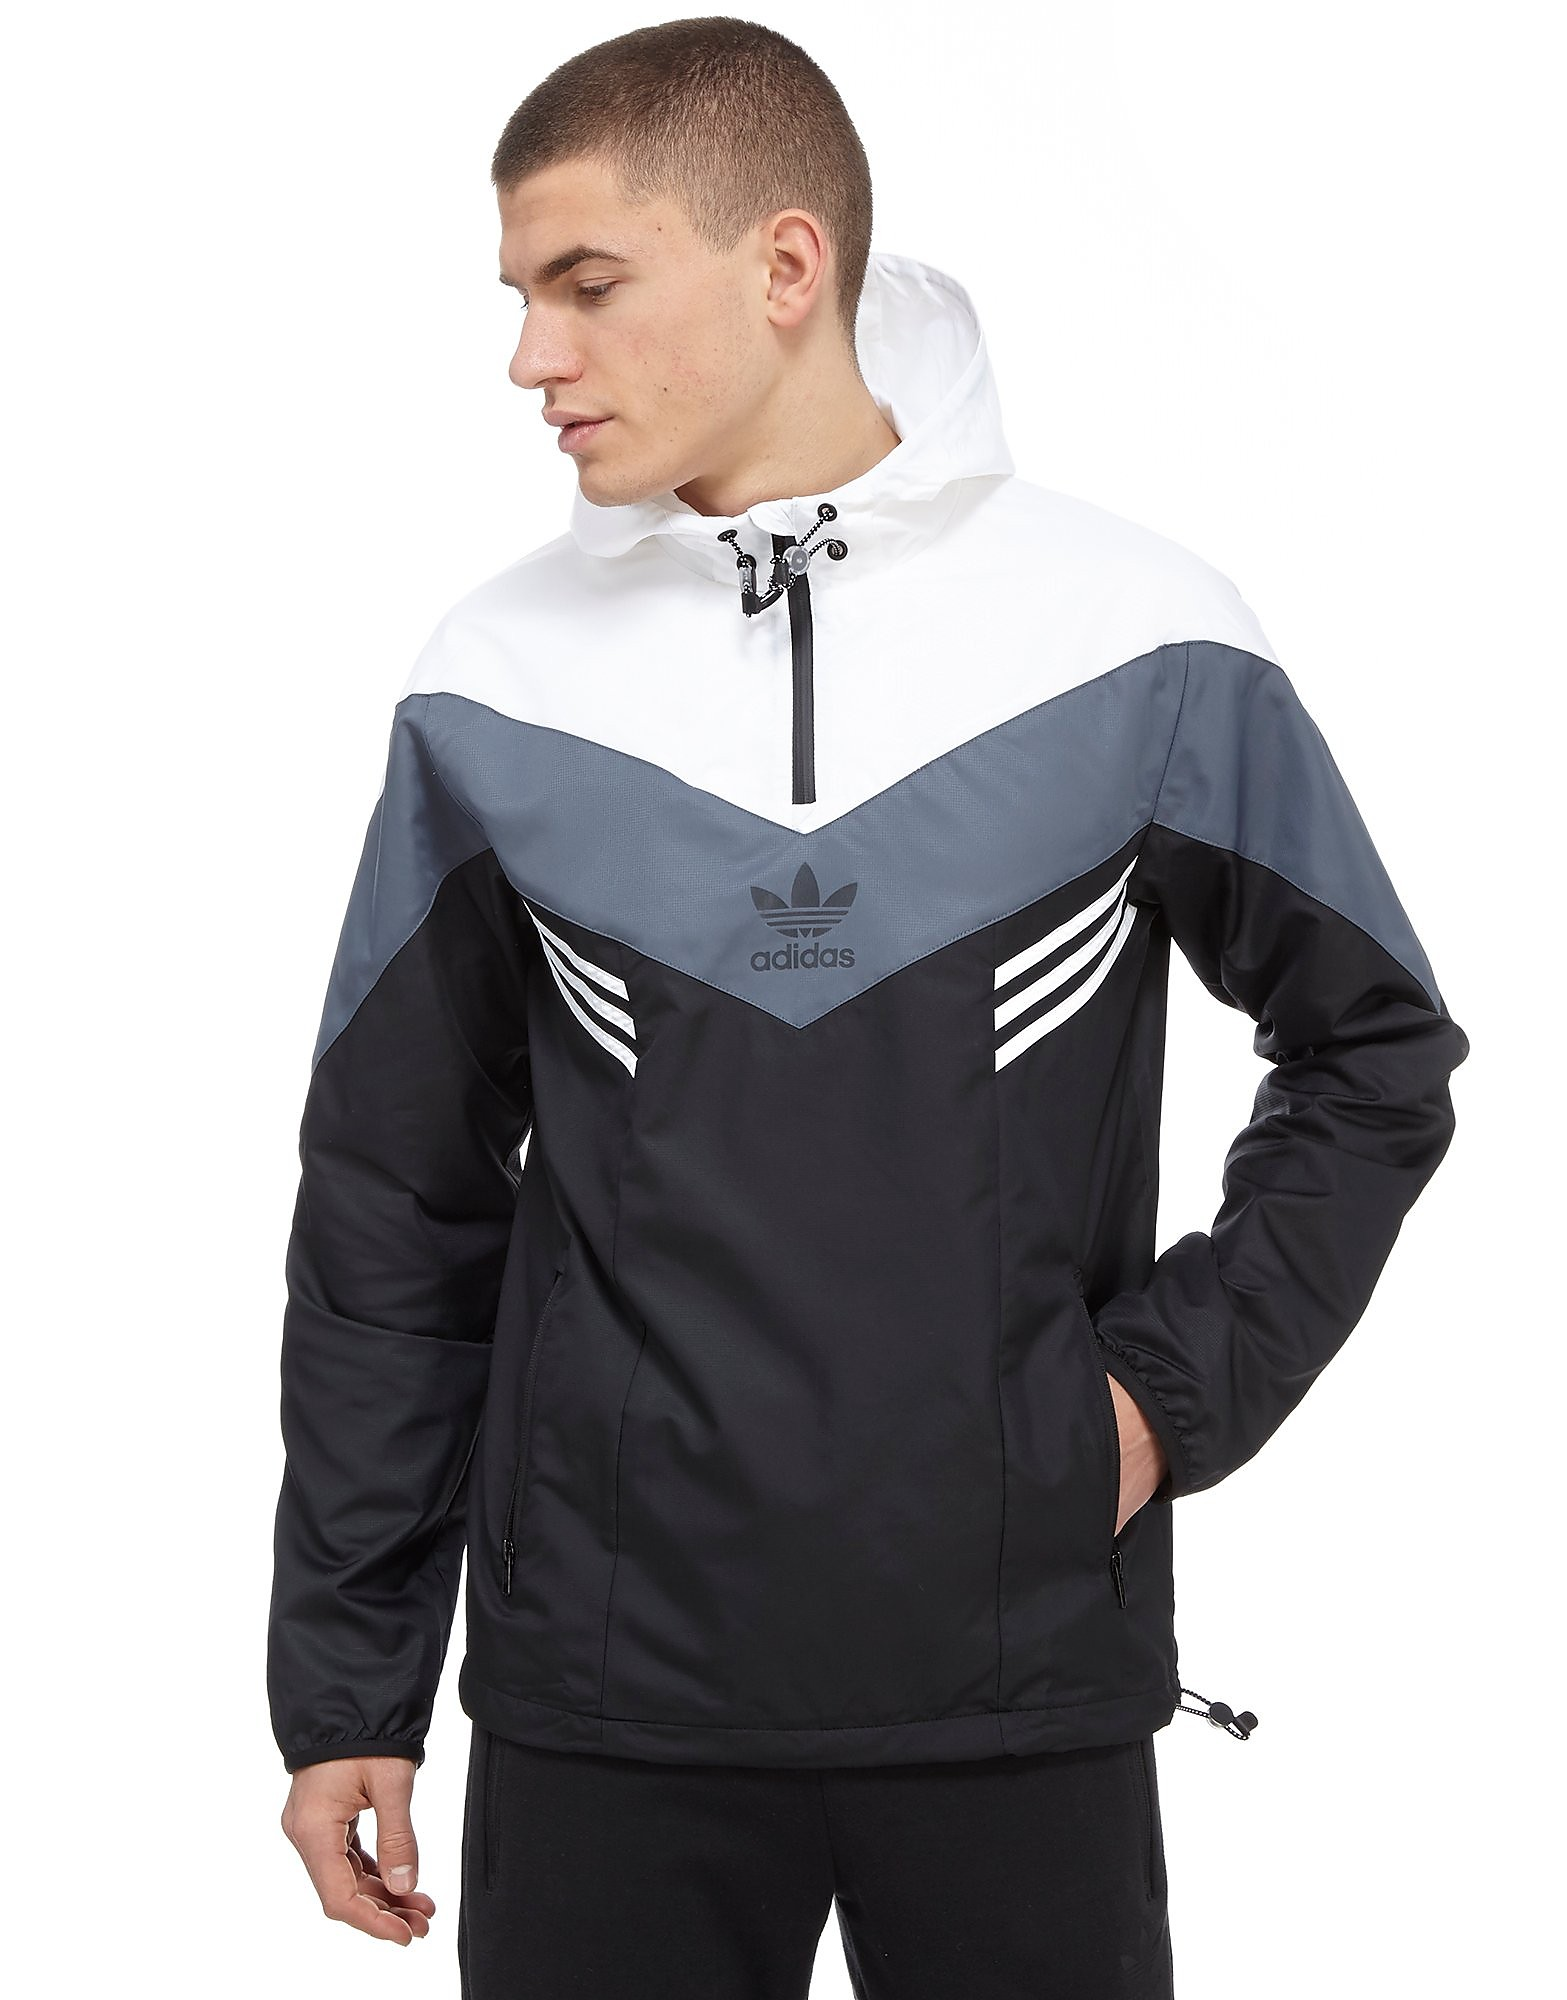 adidas Originals Street Run 1/2 Zip Jacket